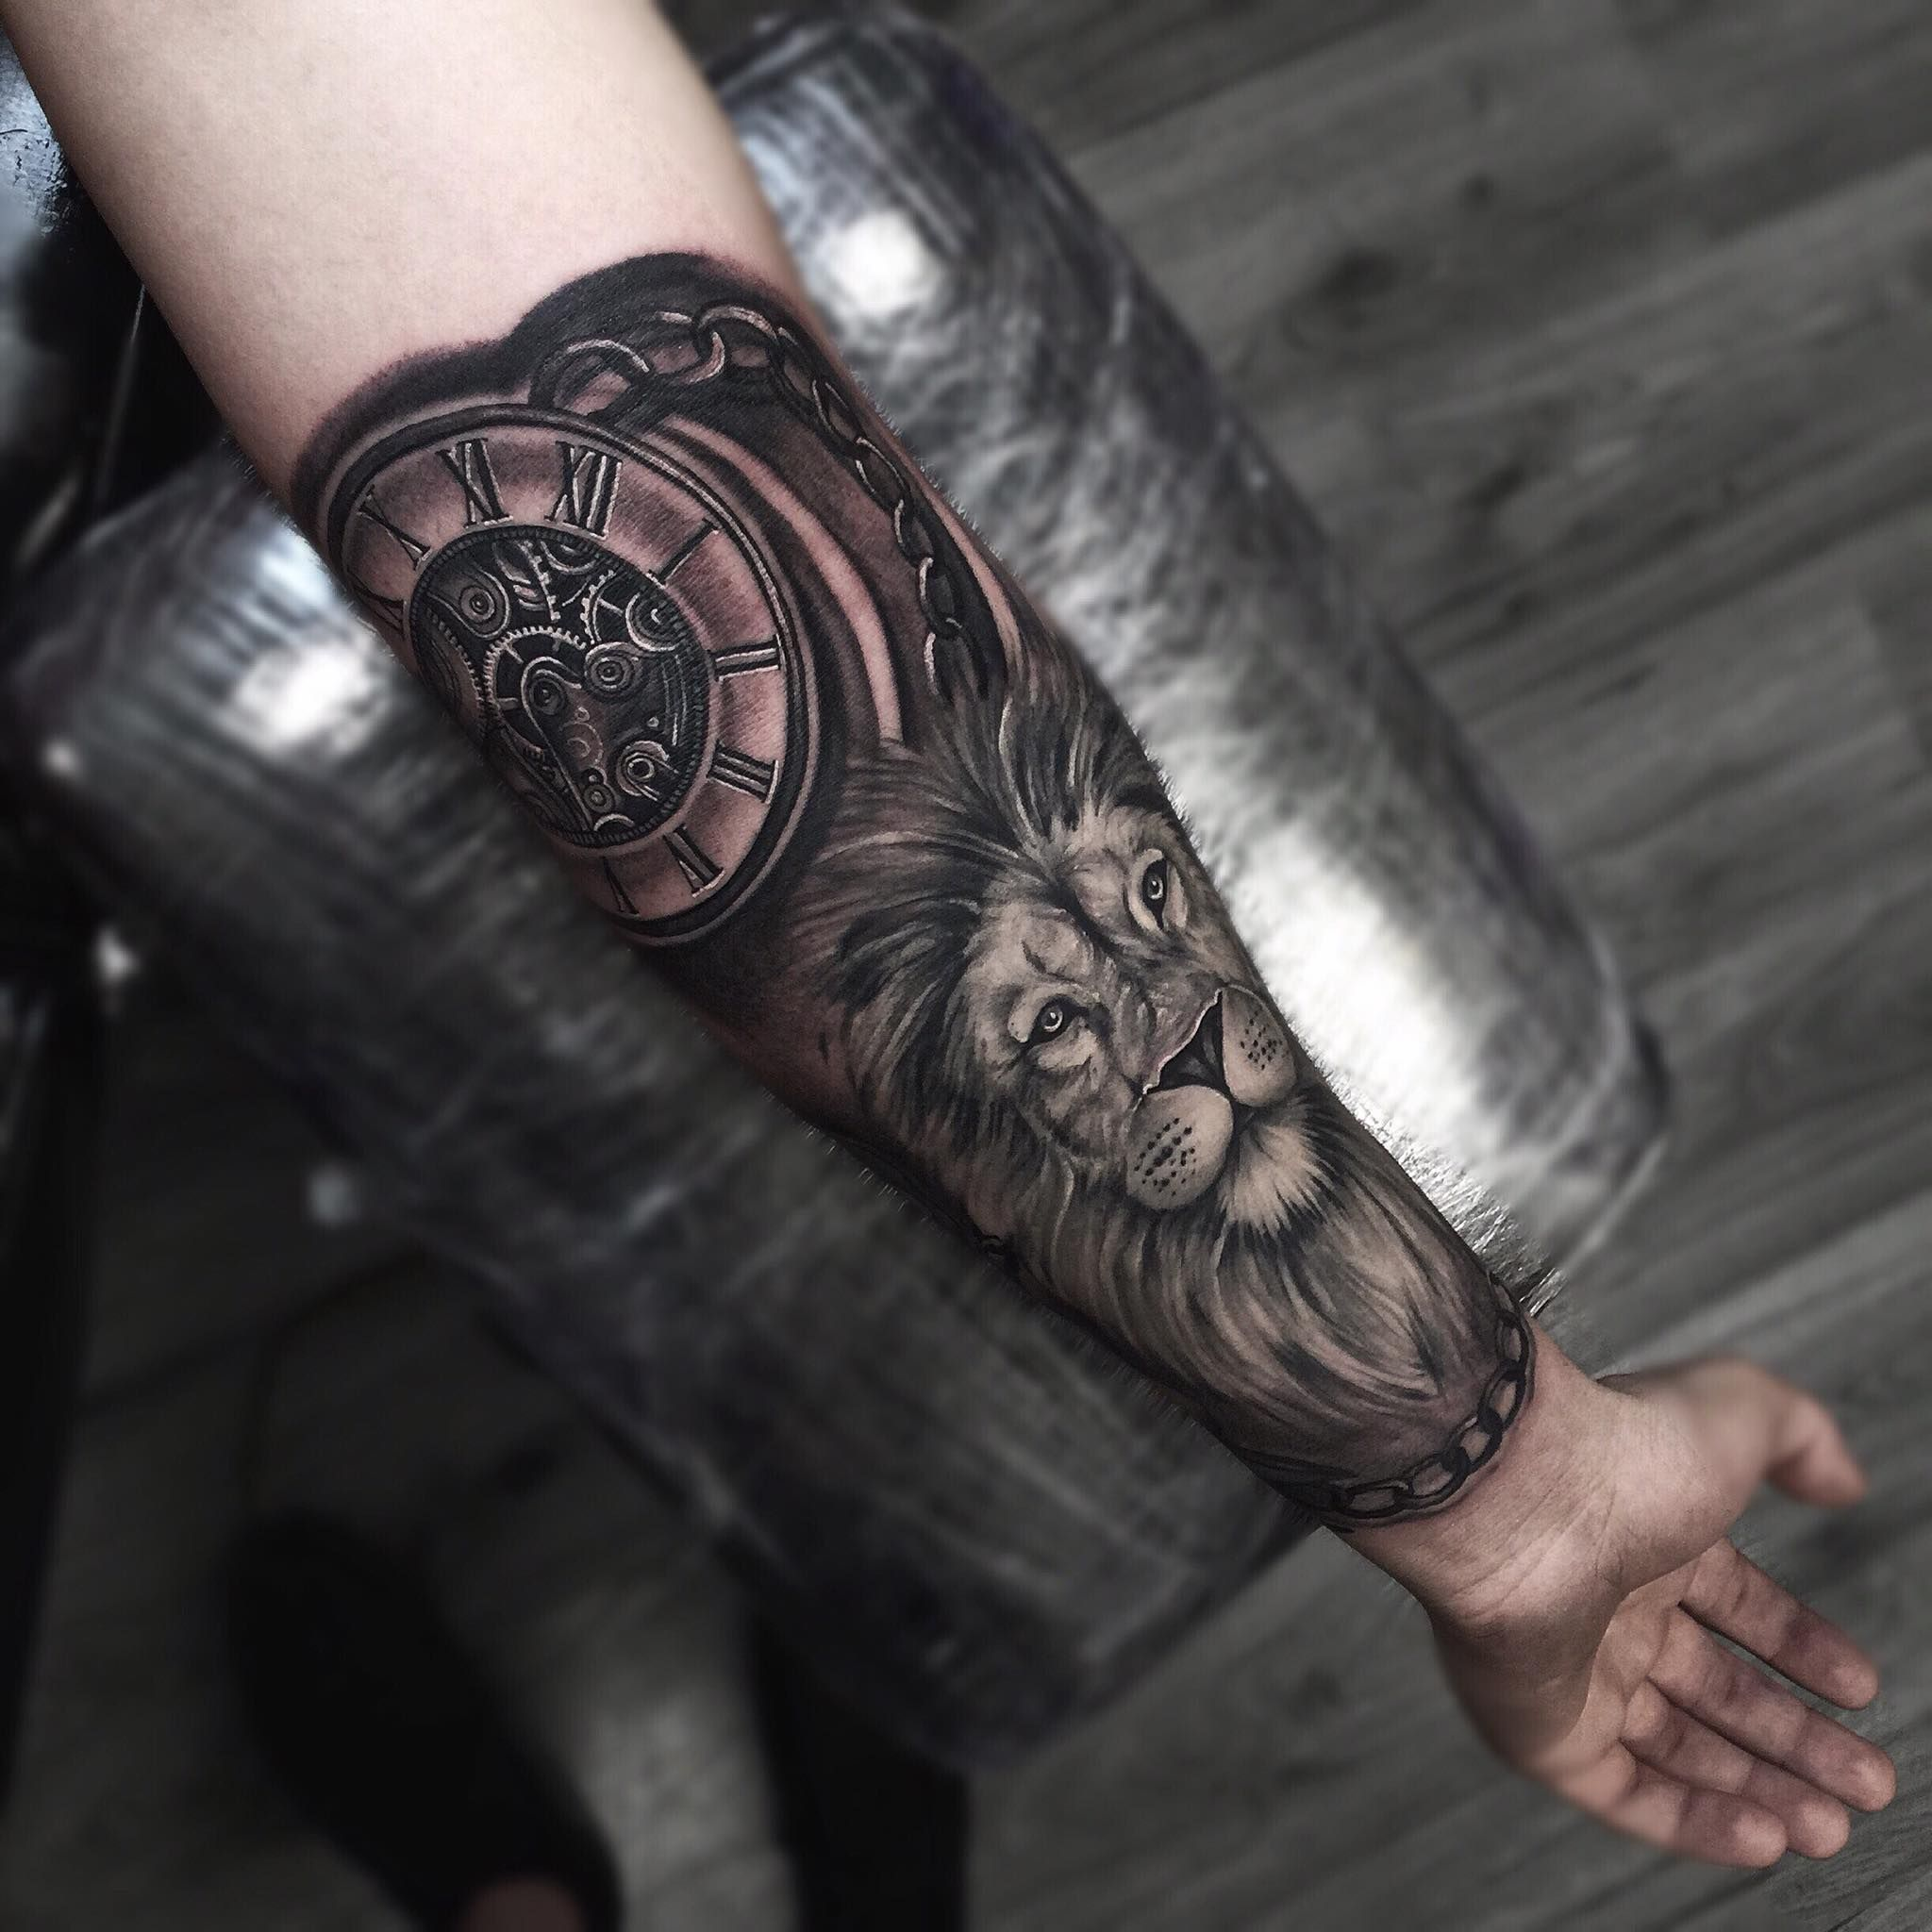 half arm tattoo lion tattoo clock tattoo tatuaggio ingranaggi tatuaggio leone clock tattoo. Black Bedroom Furniture Sets. Home Design Ideas